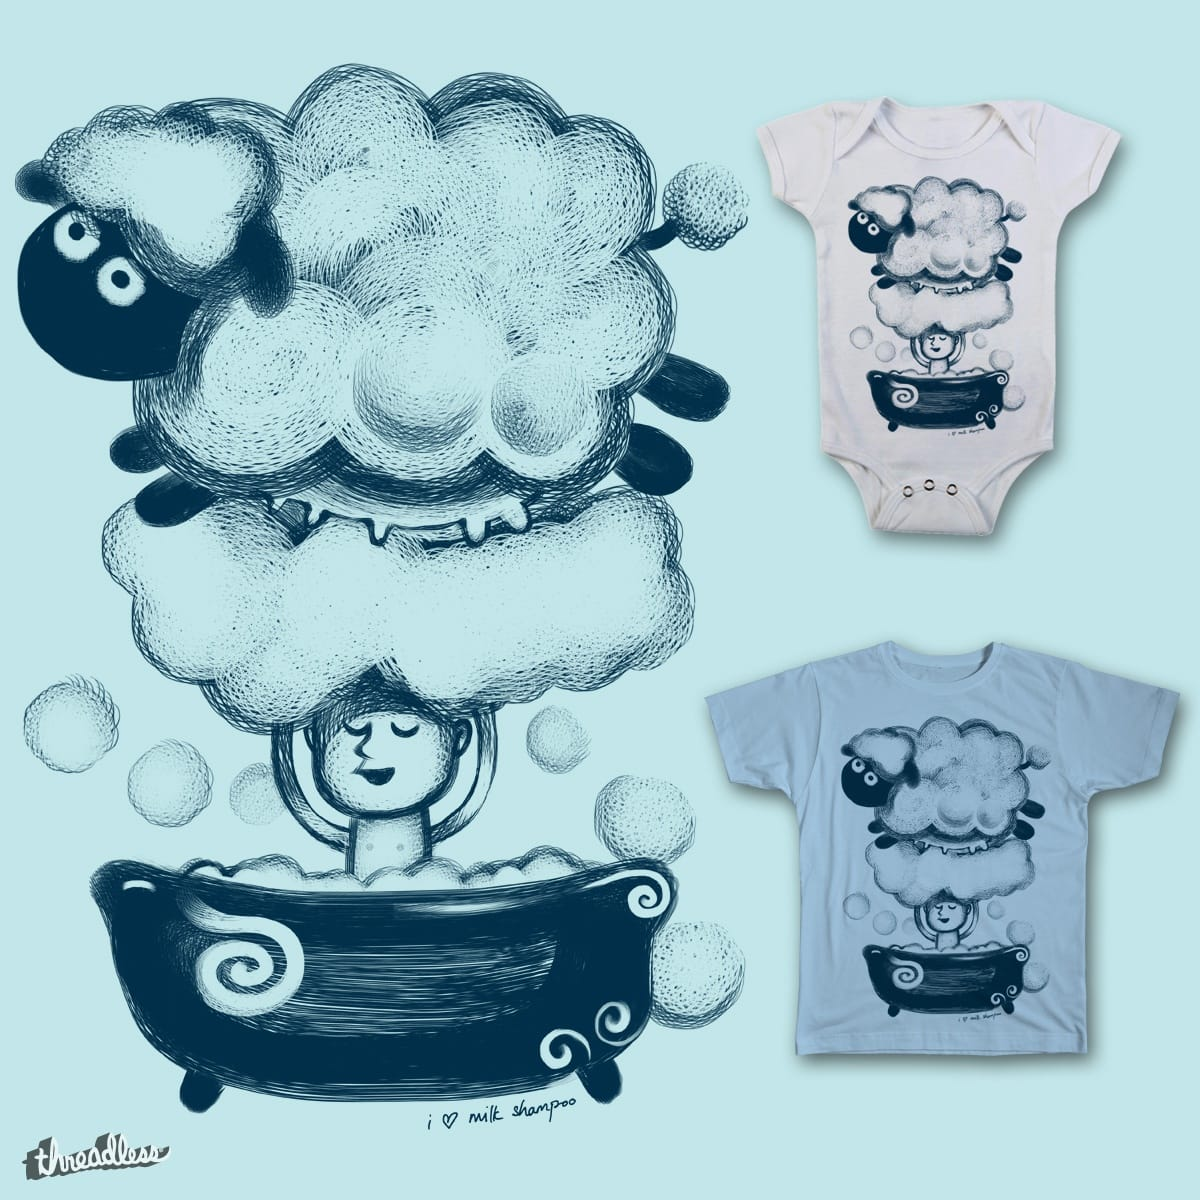 i love milk shampoo by okok on Threadless